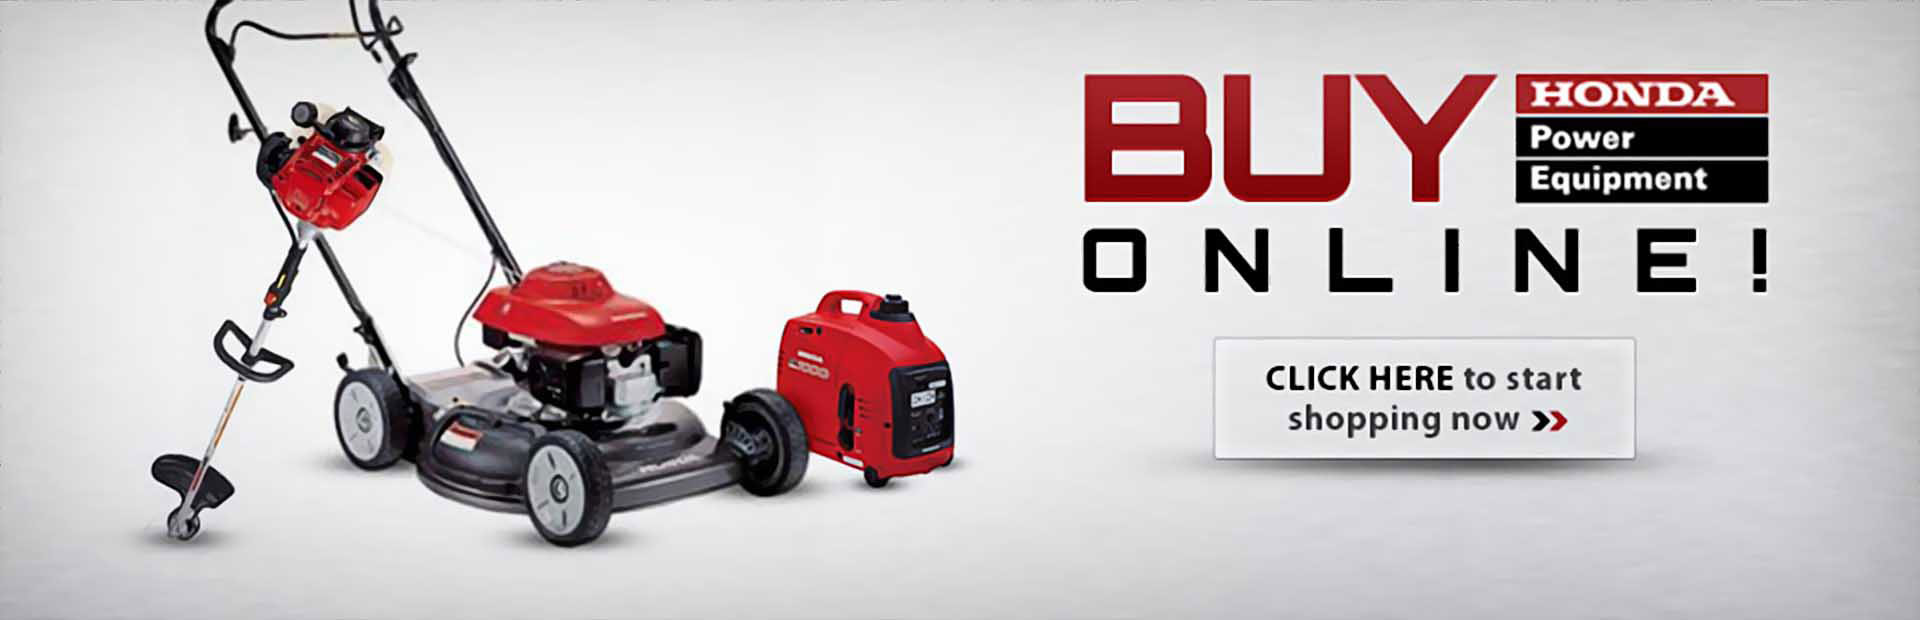 Buy Honda Power Equipment online